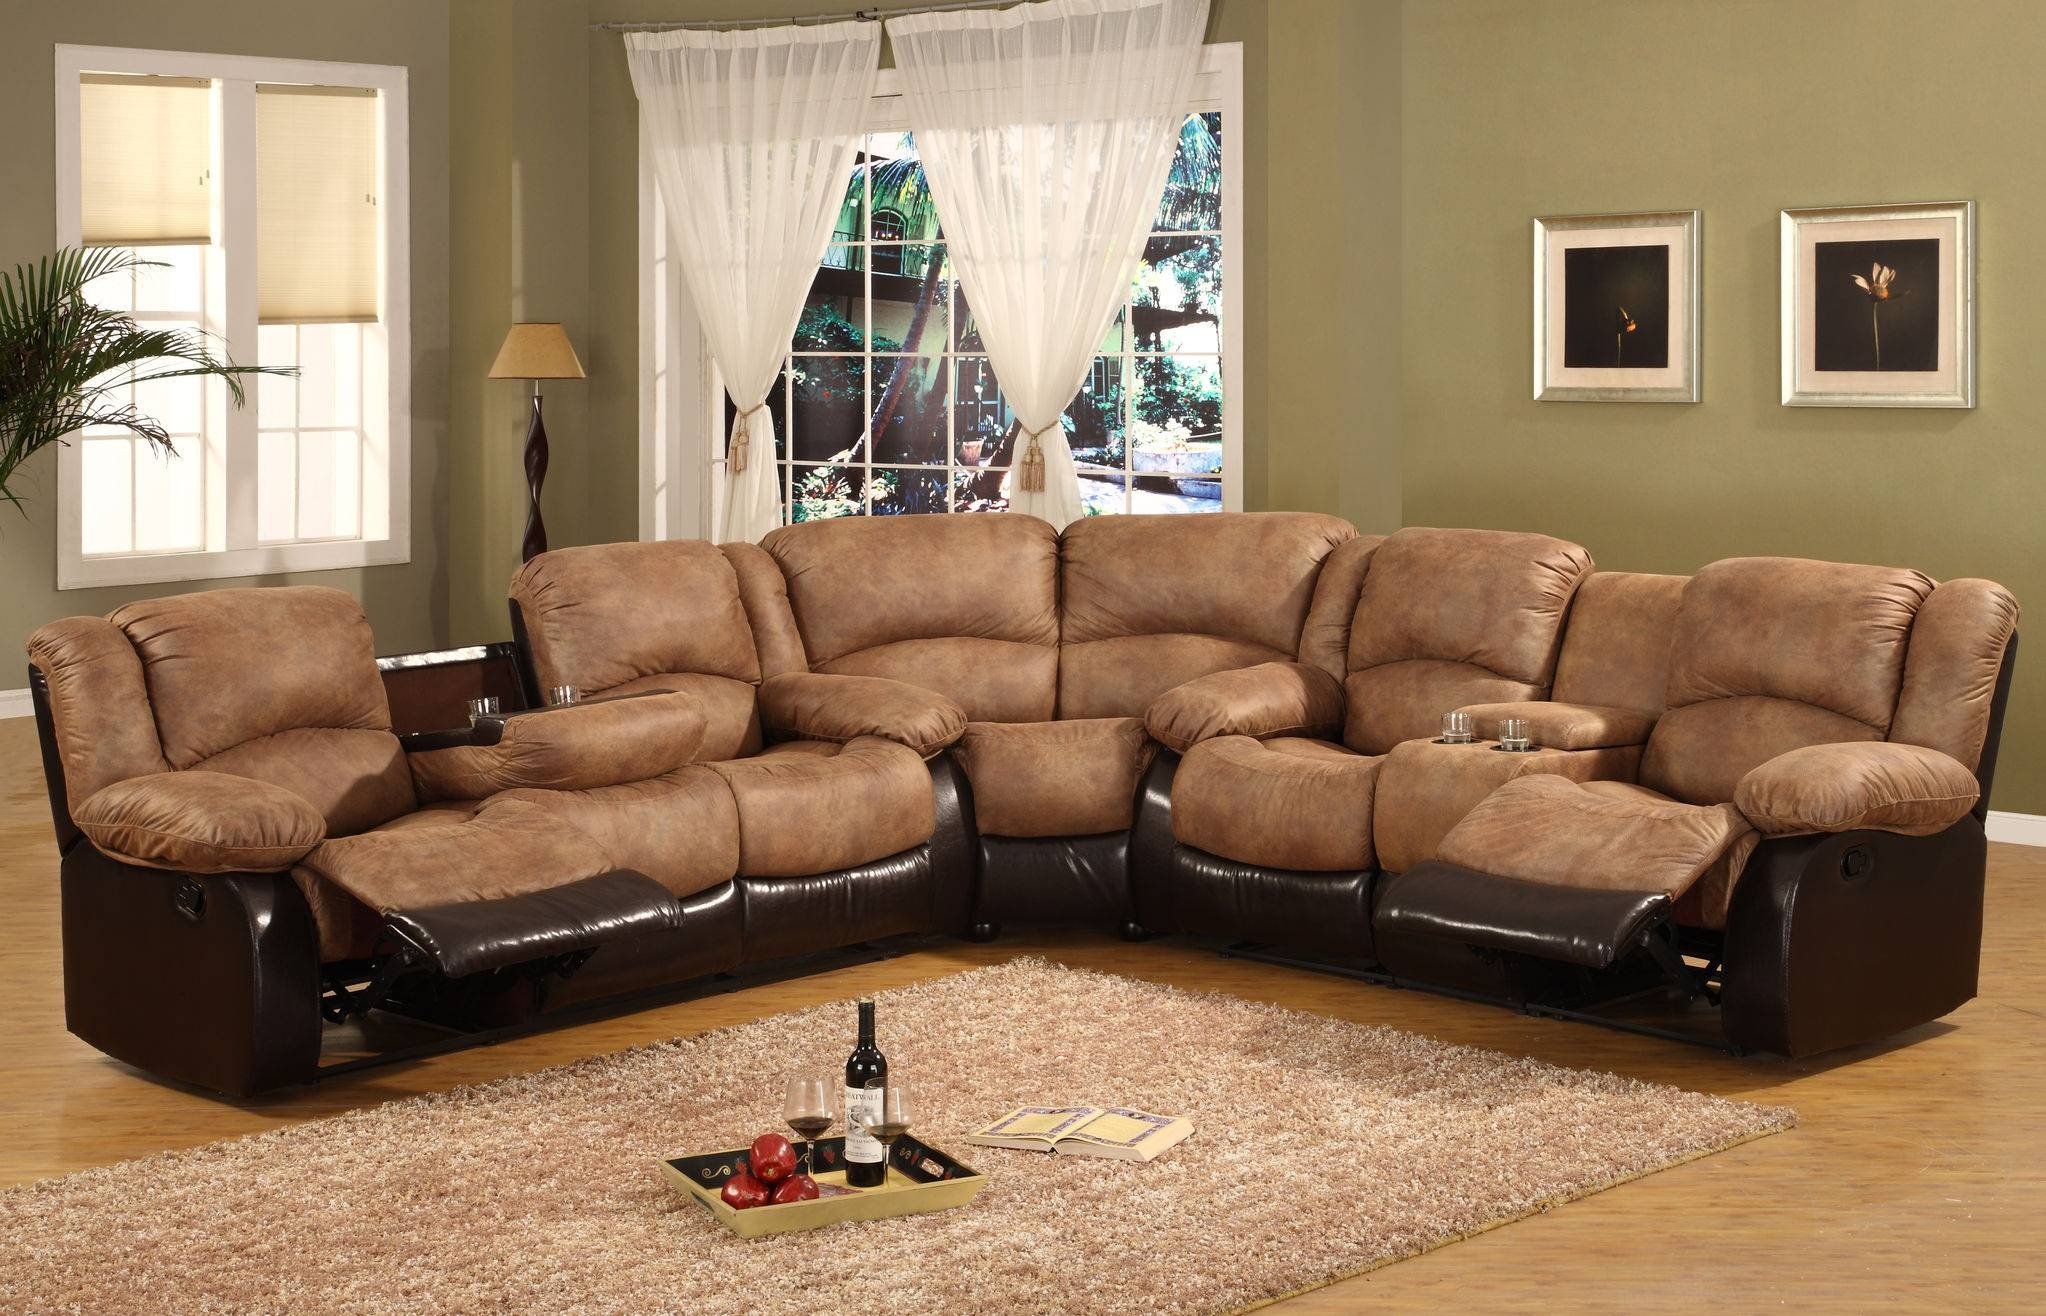 Furniture: Beautiful Sectional Sofas Cheap For Living Room inside Sectinal Sofas (Image 10 of 30)